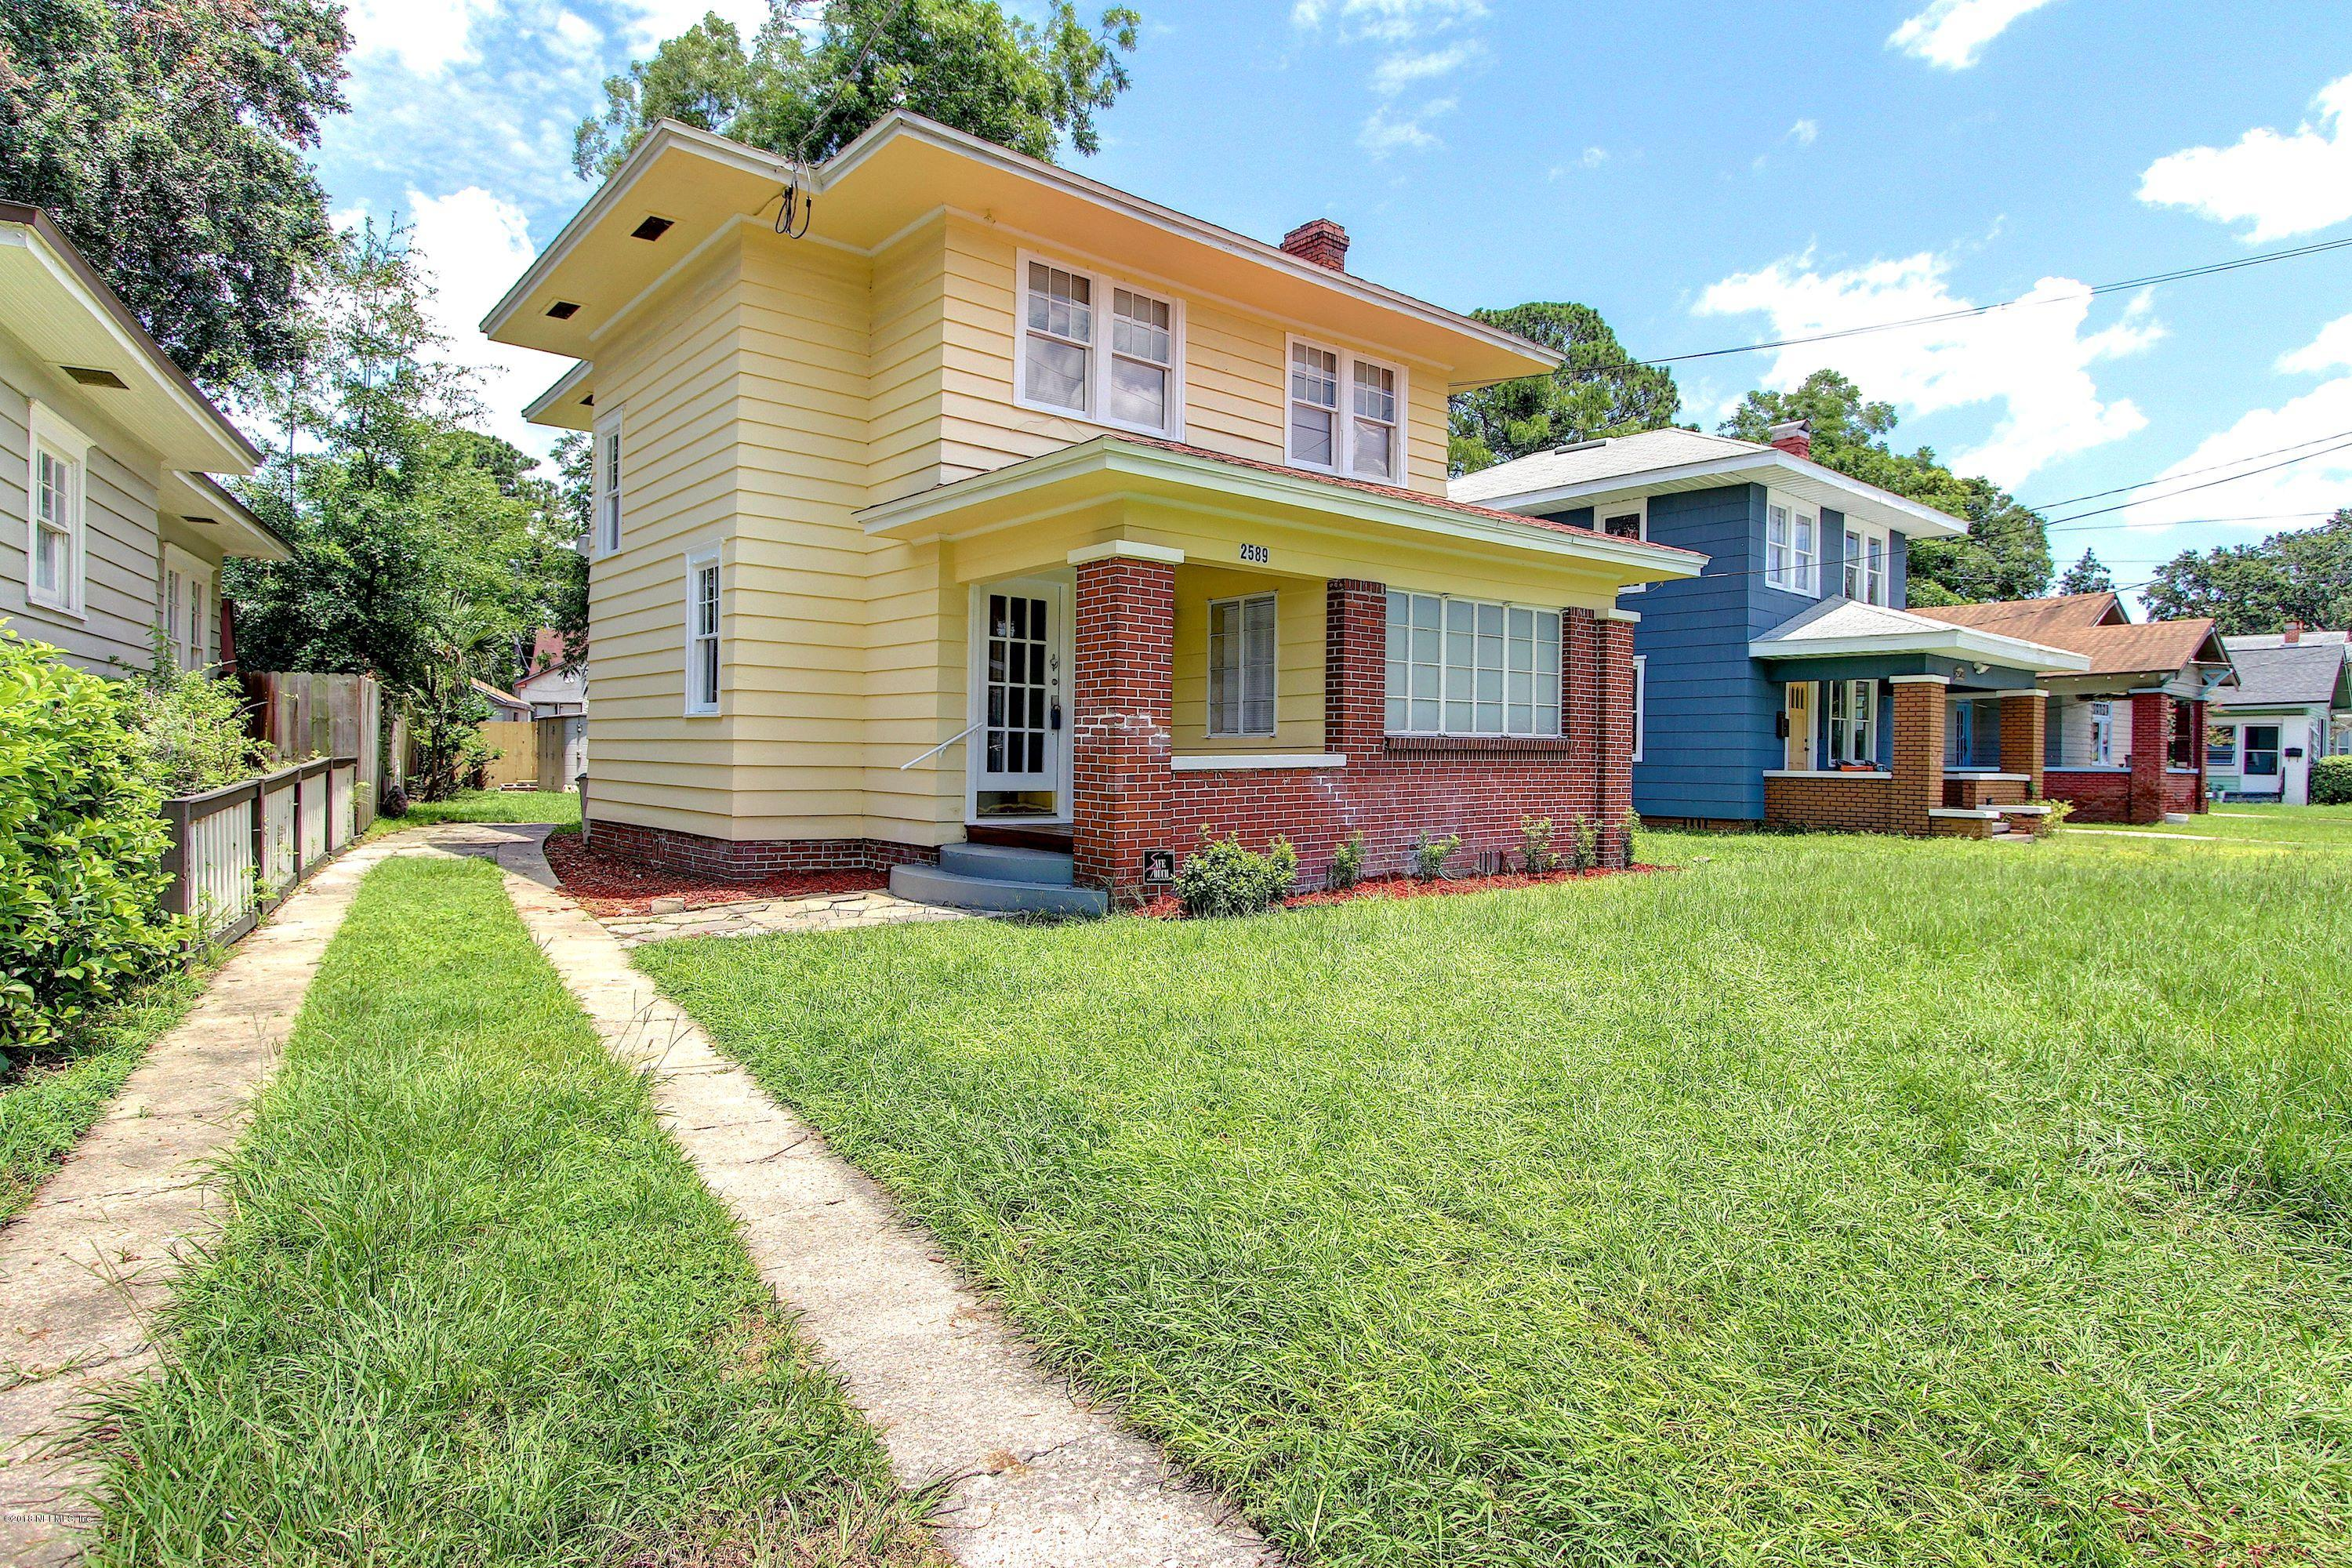 2589 COLLEGE, JACKSONVILLE, FLORIDA 32204, 3 Bedrooms Bedrooms, ,2 BathroomsBathrooms,Residential - single family,For sale,COLLEGE,941225